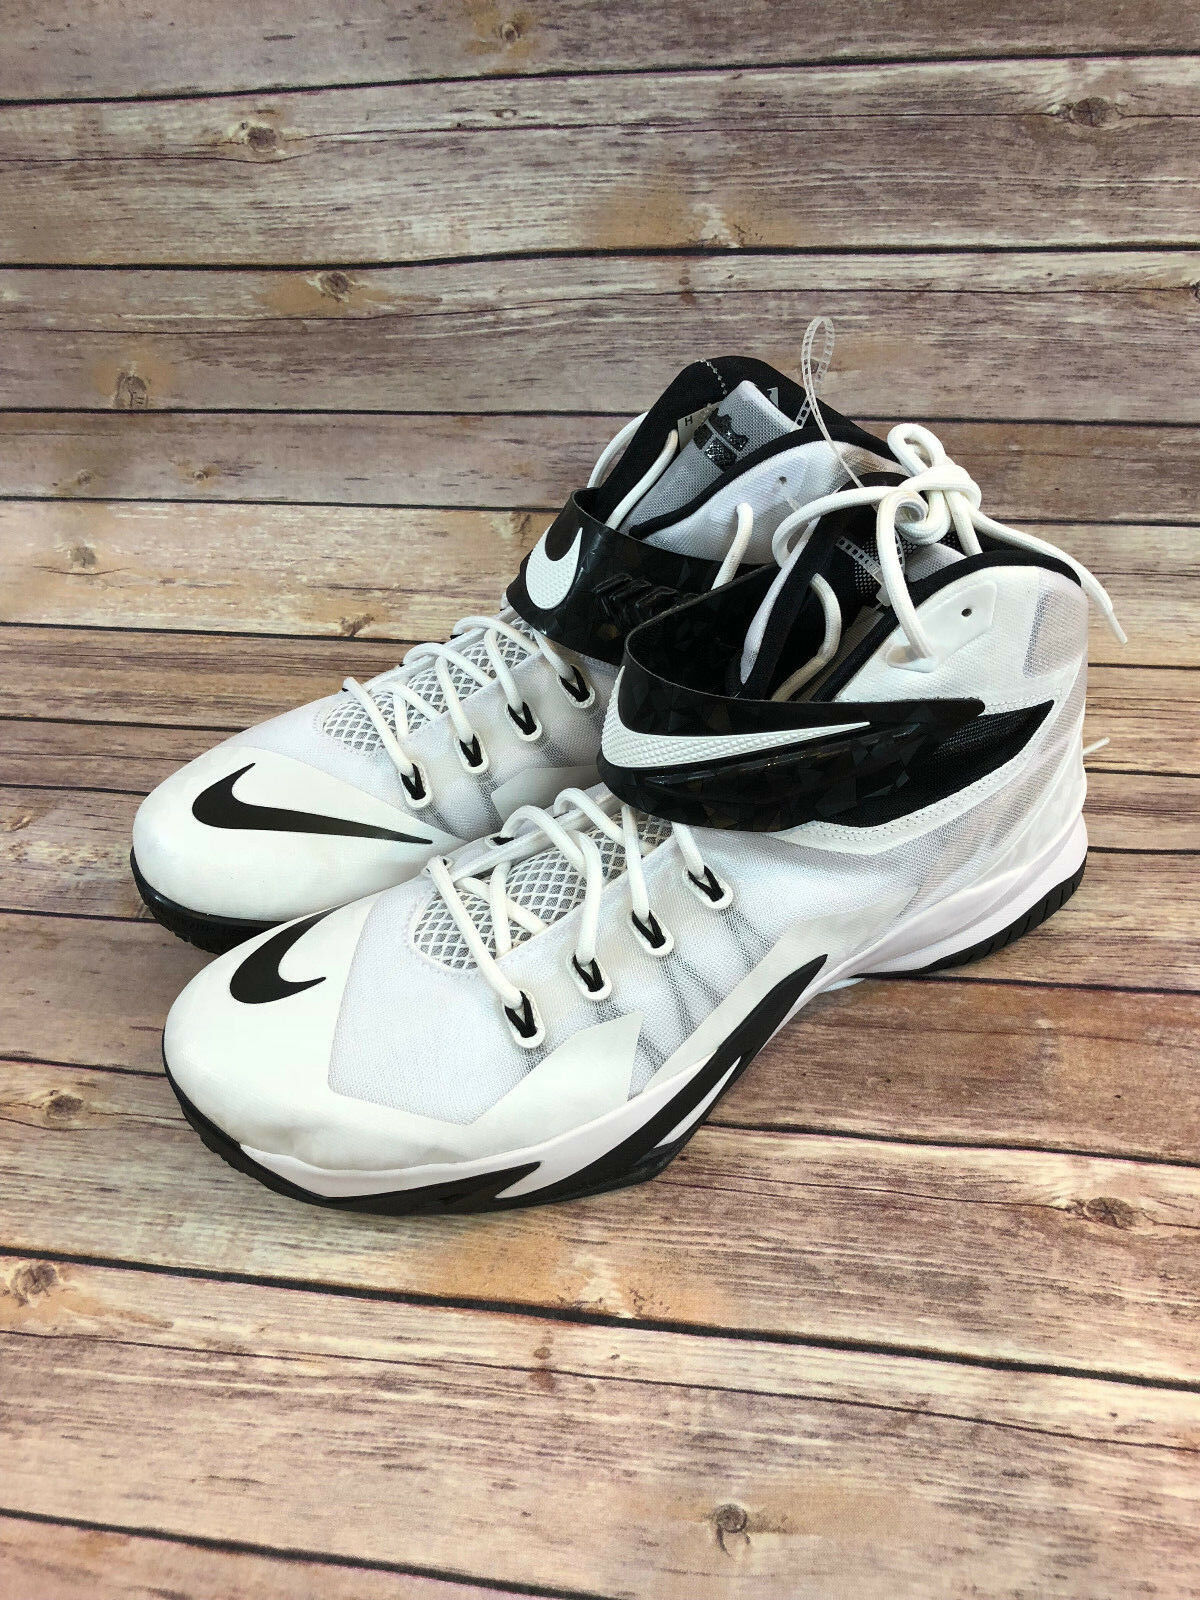 NIKE 653648-100 LEBRON ZOOM SOLDIER 8 White & Black Basketball shoes Size 18